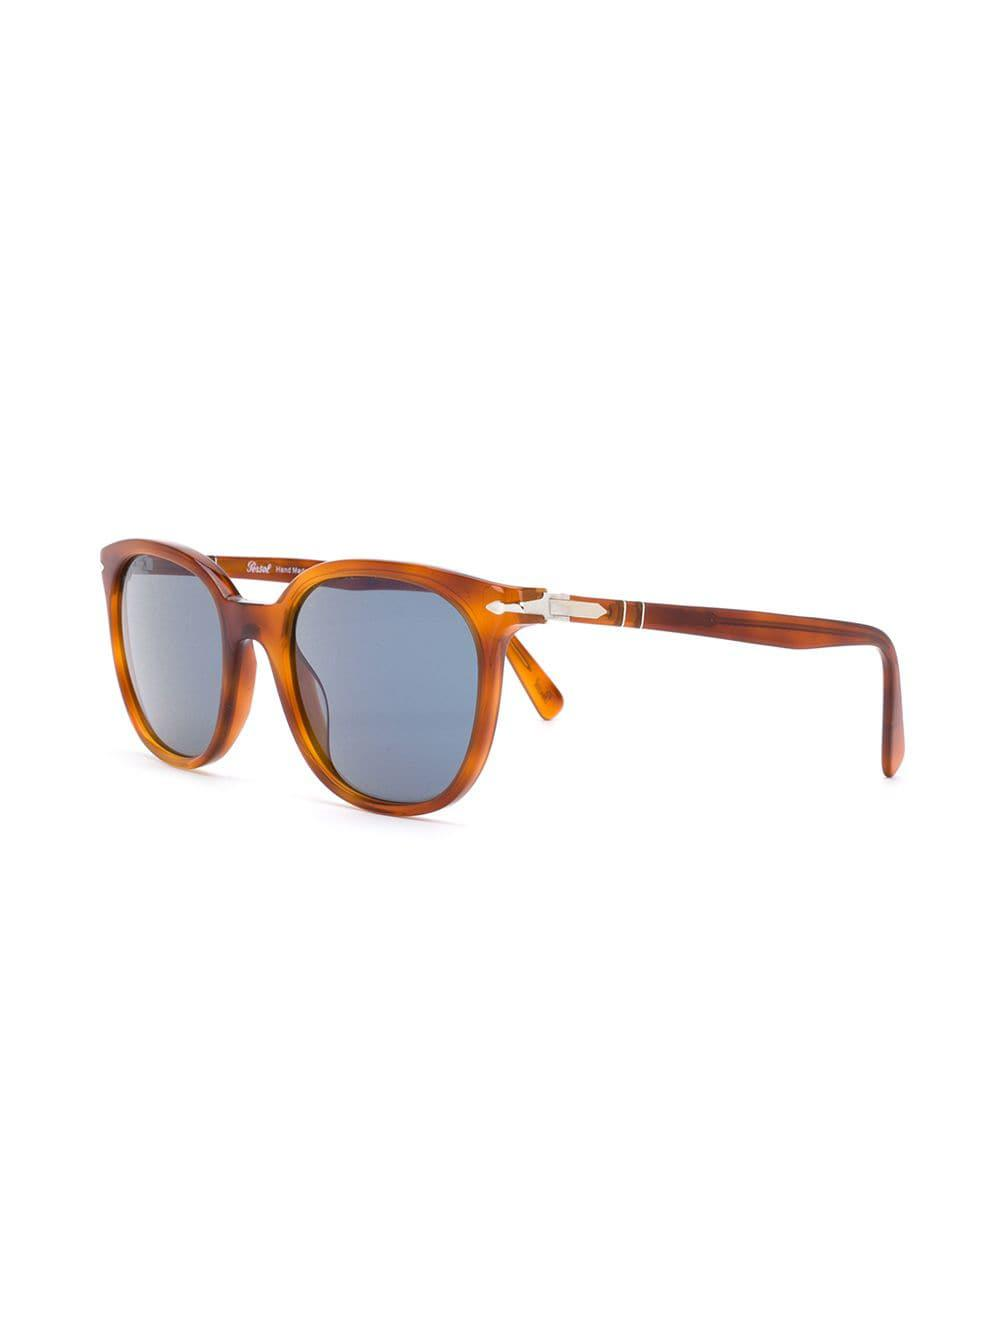 131f67ac5c Persol Square Frame Sunglasses in Brown for Men - Lyst